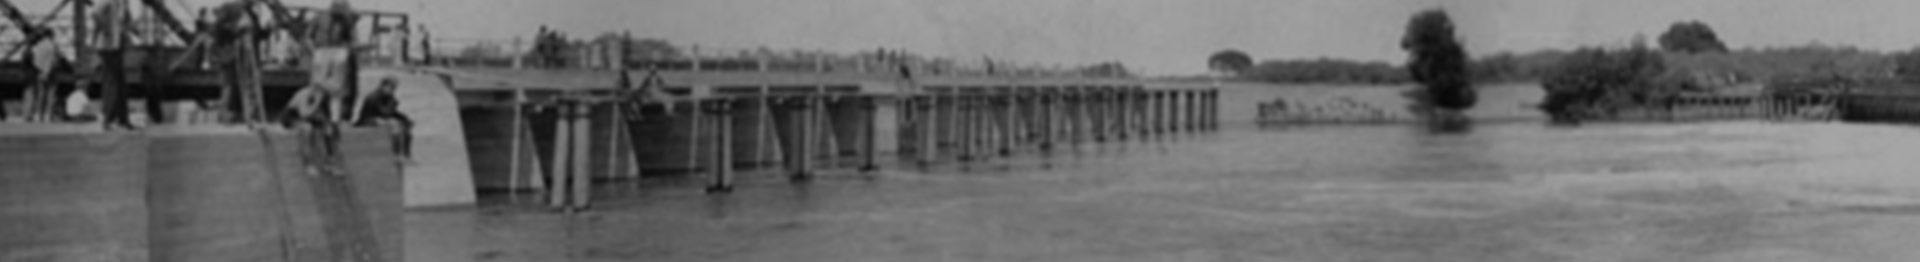 Central California Irrigation District History